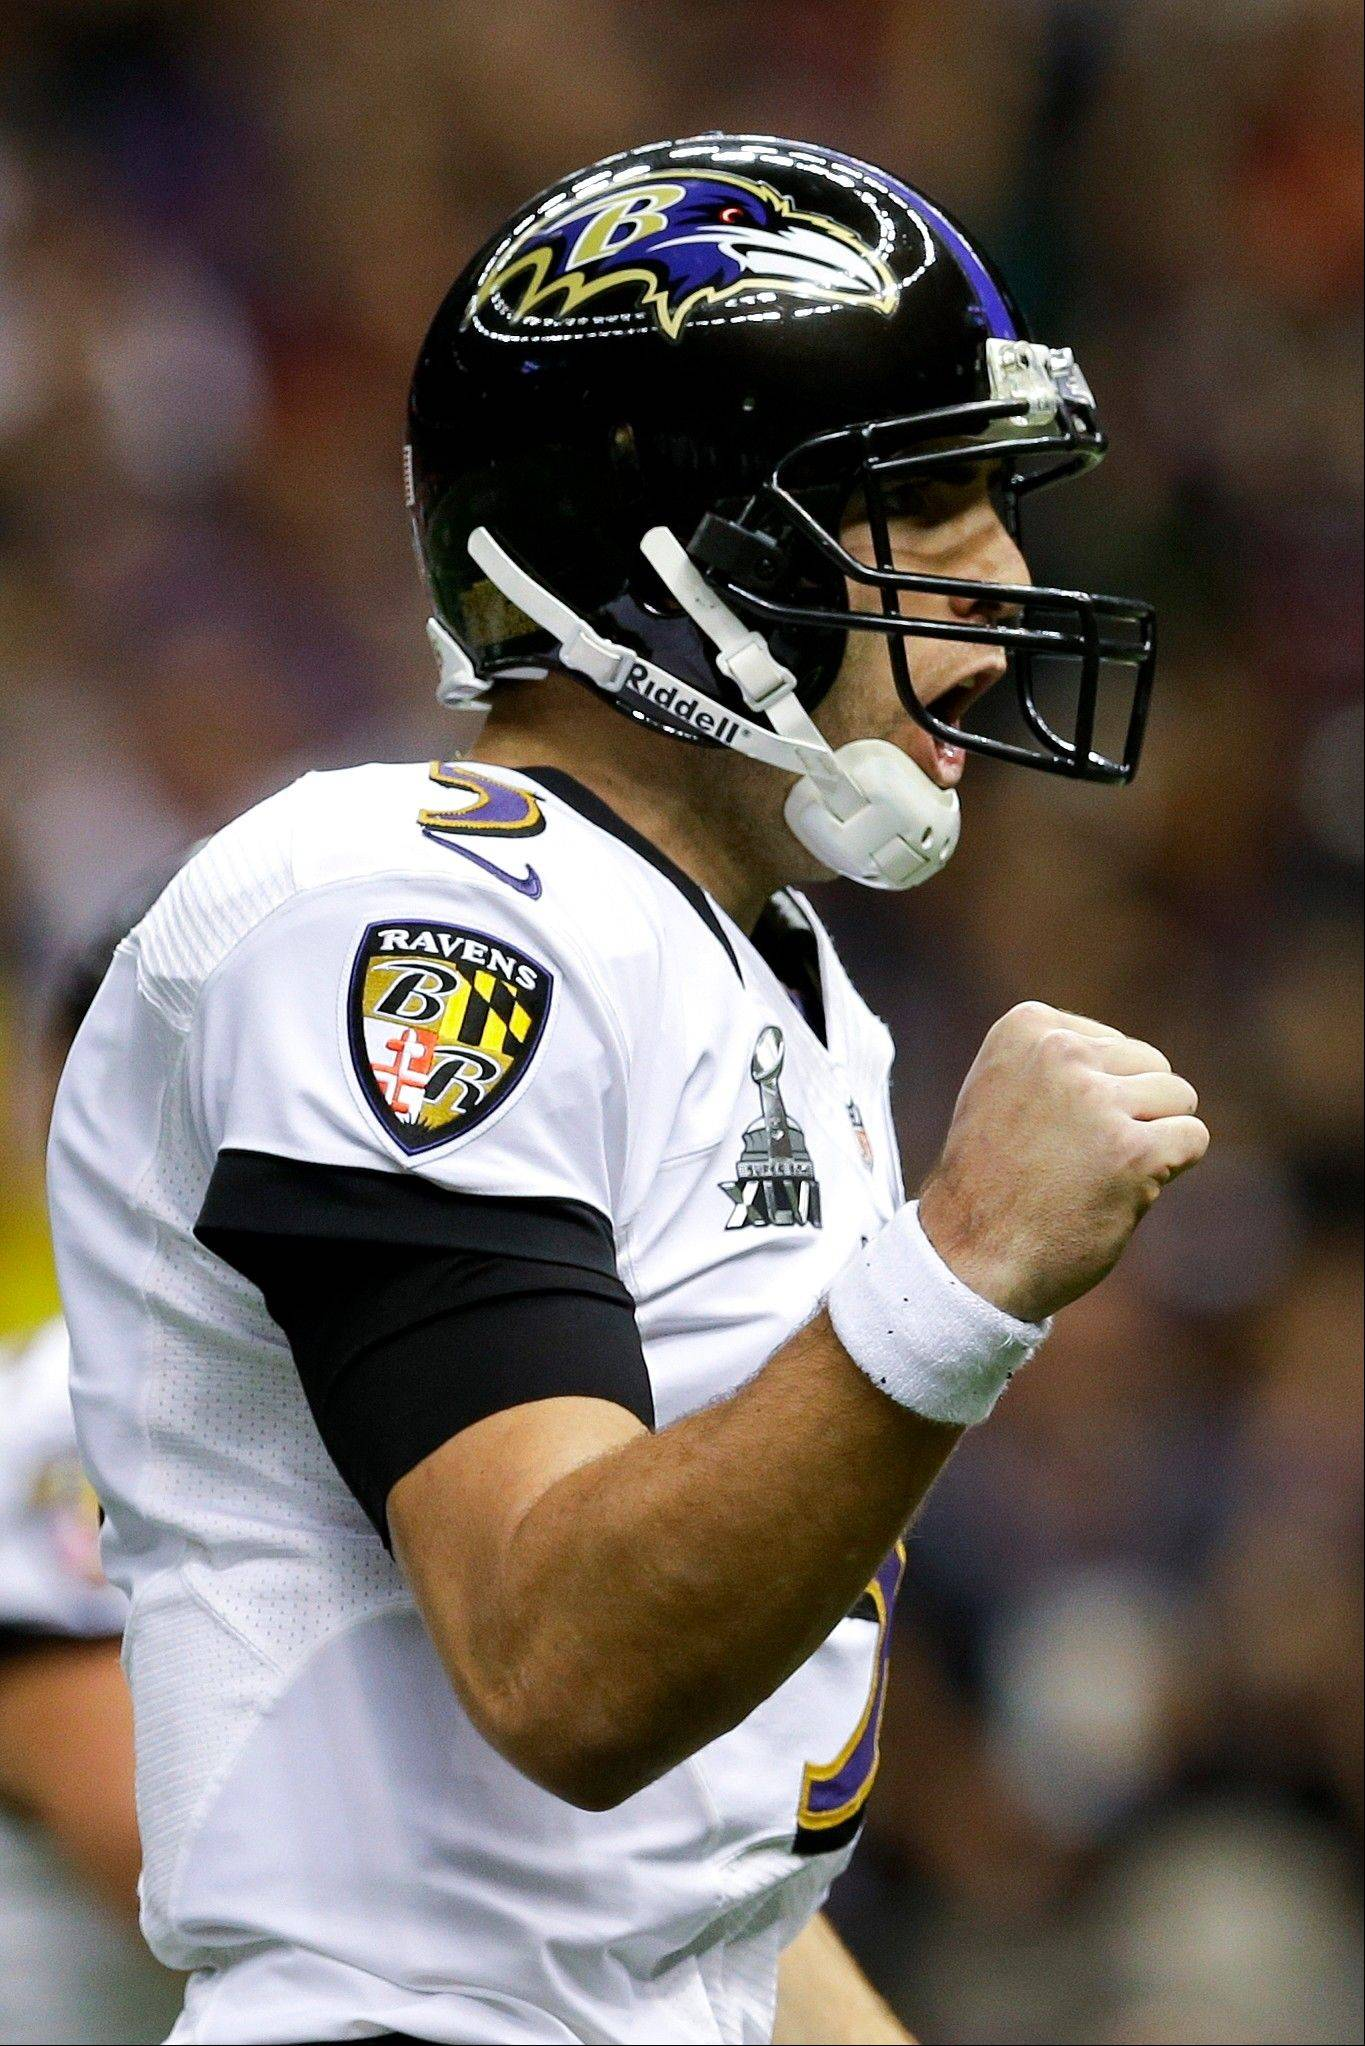 Baltimore Ravens quarterback Joe Flacco reacts after their touchdown against the San Francisco 49ers during the first half.